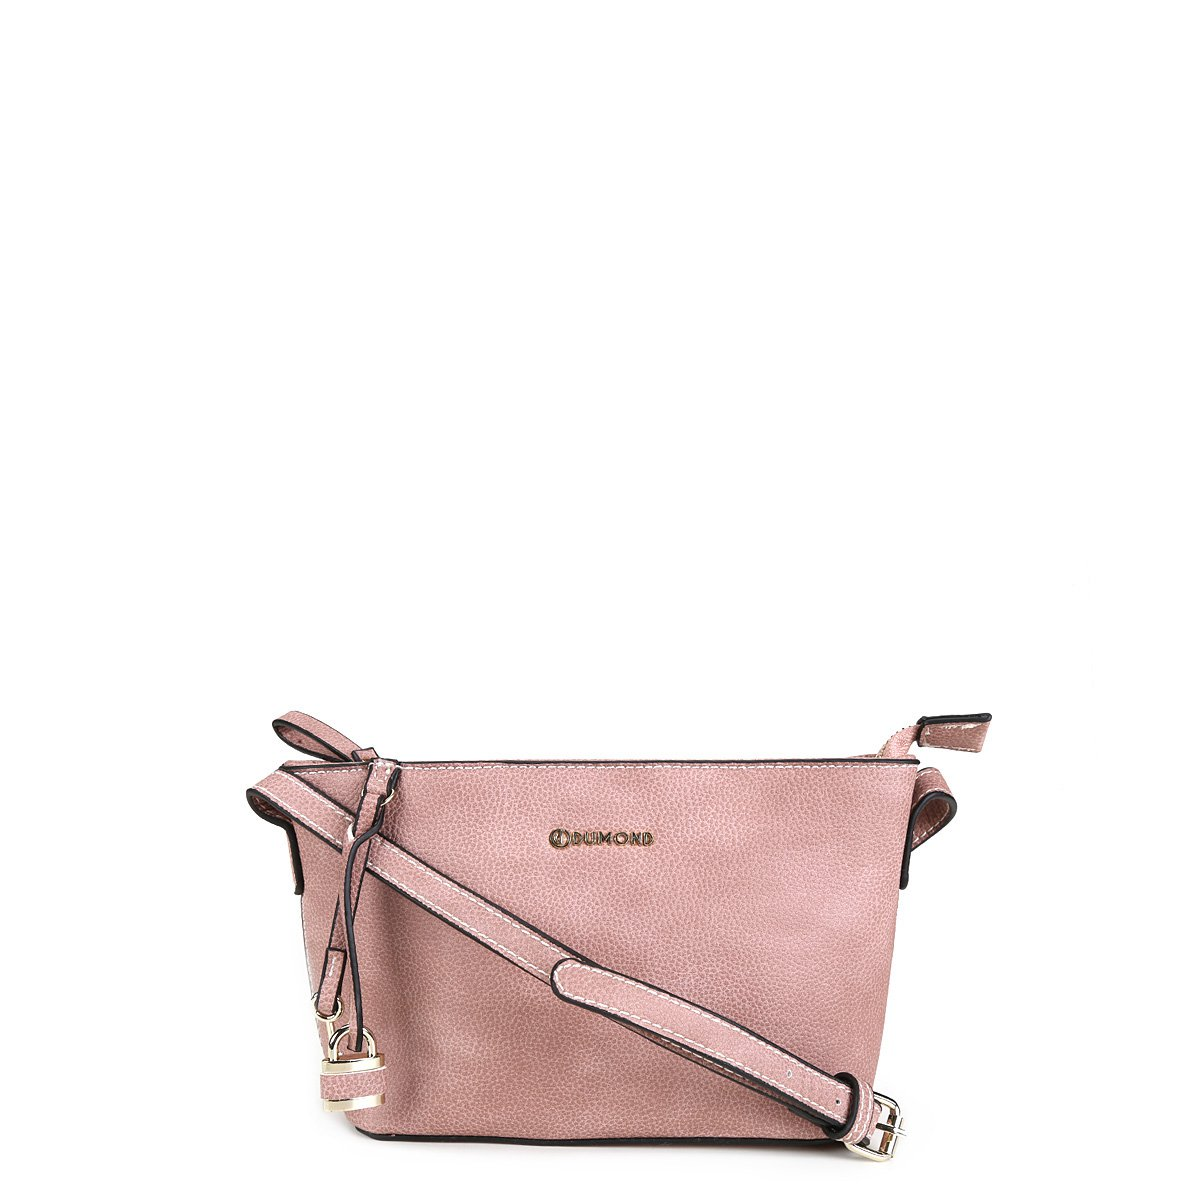 Bag Bag Mini Floater Dumond Mini Feminina Dumond Bolsa Nude Bolsa OHqZUYH